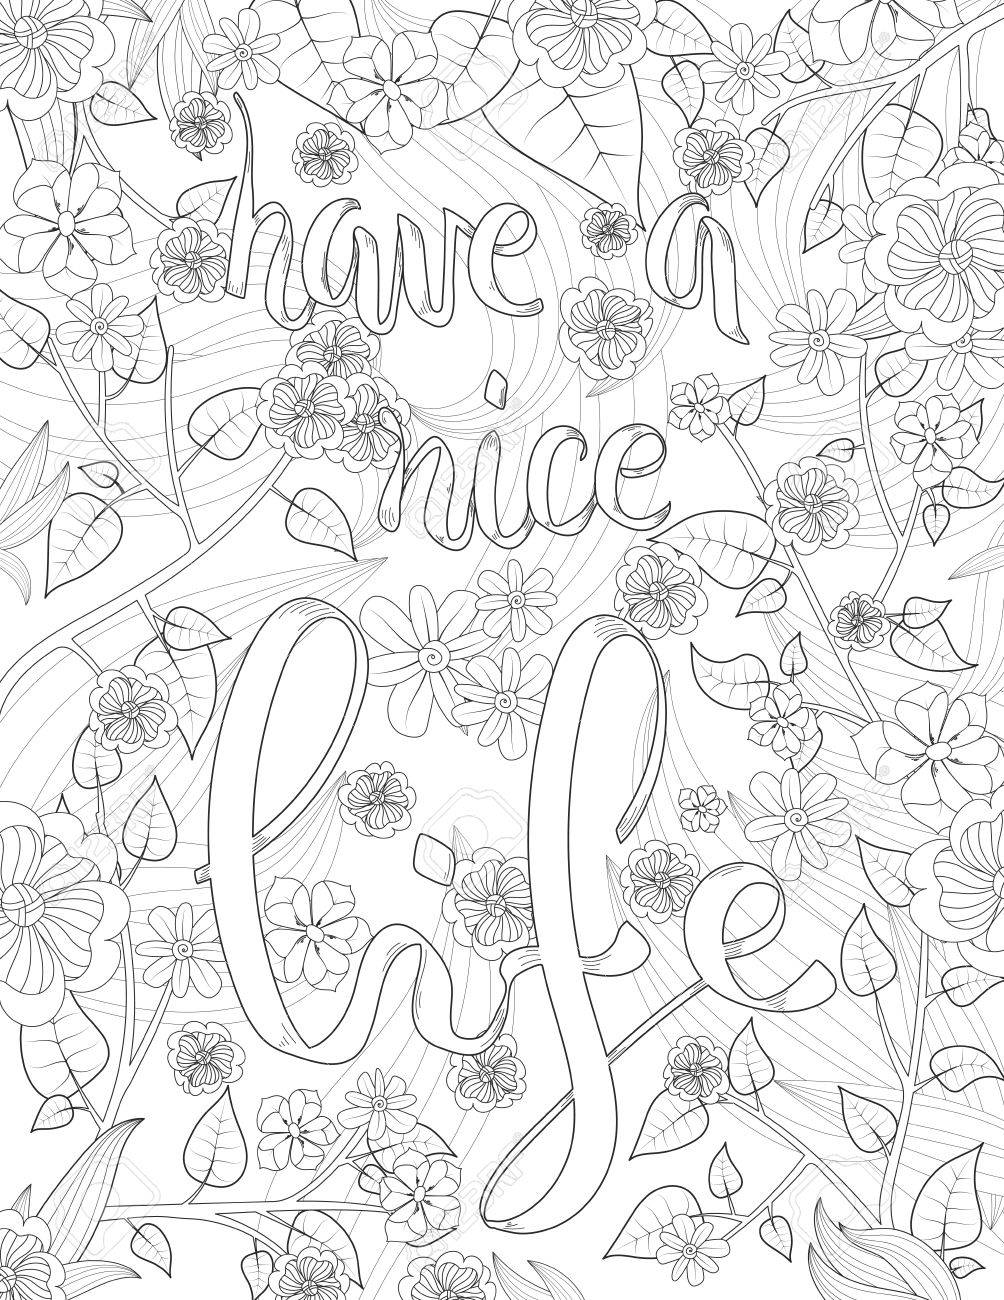 Coloring book inspirational - Have A Nice Life Vector Anti Stress Pattern Positive Quote Inspirational Coloring Book